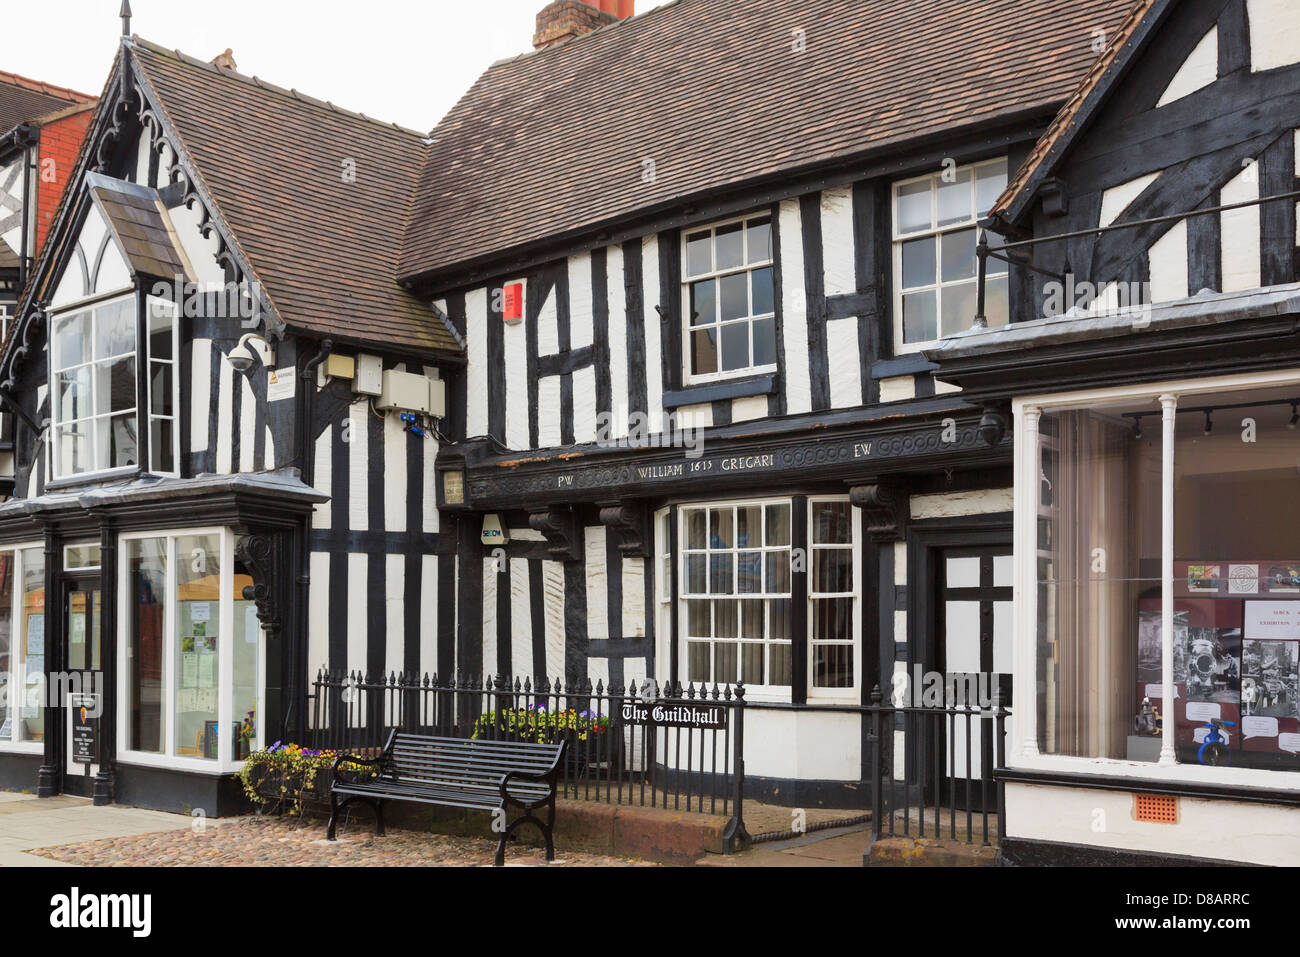 17th century Guildhall circa 1615 timbered building housing the Town Council in Newport, Shropshire, West Midlands, - Stock Image